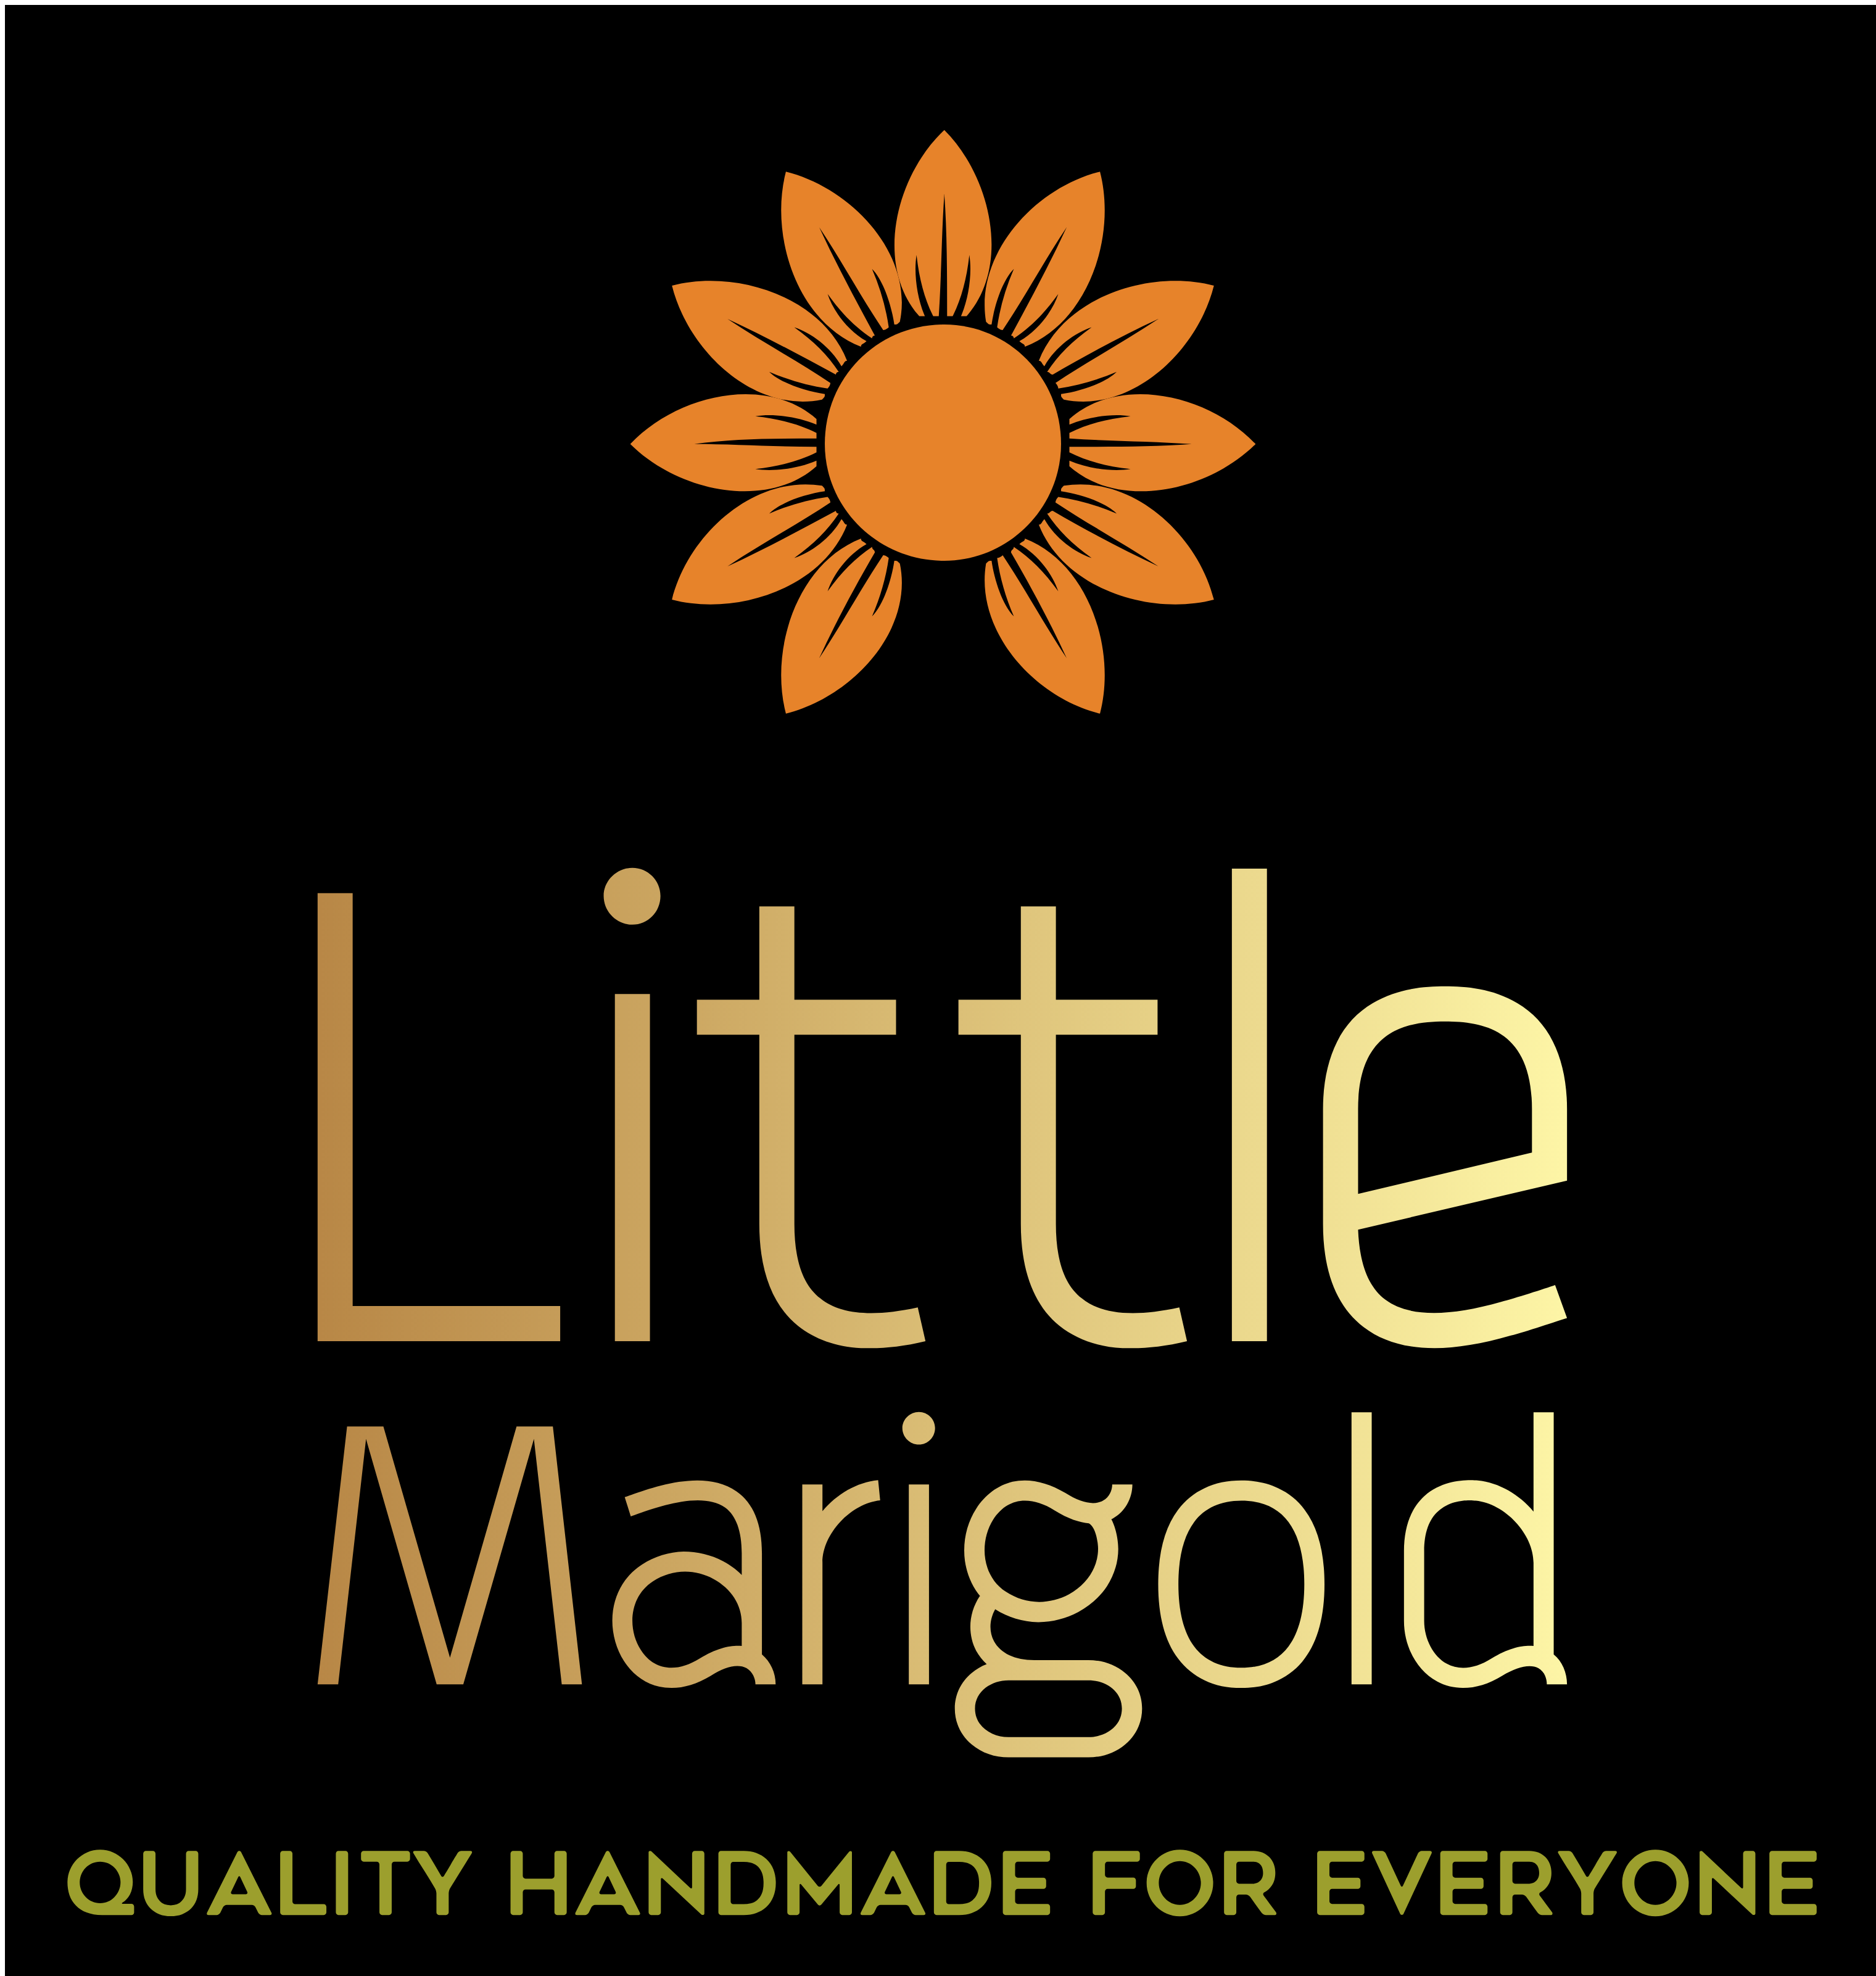 Little Marigold